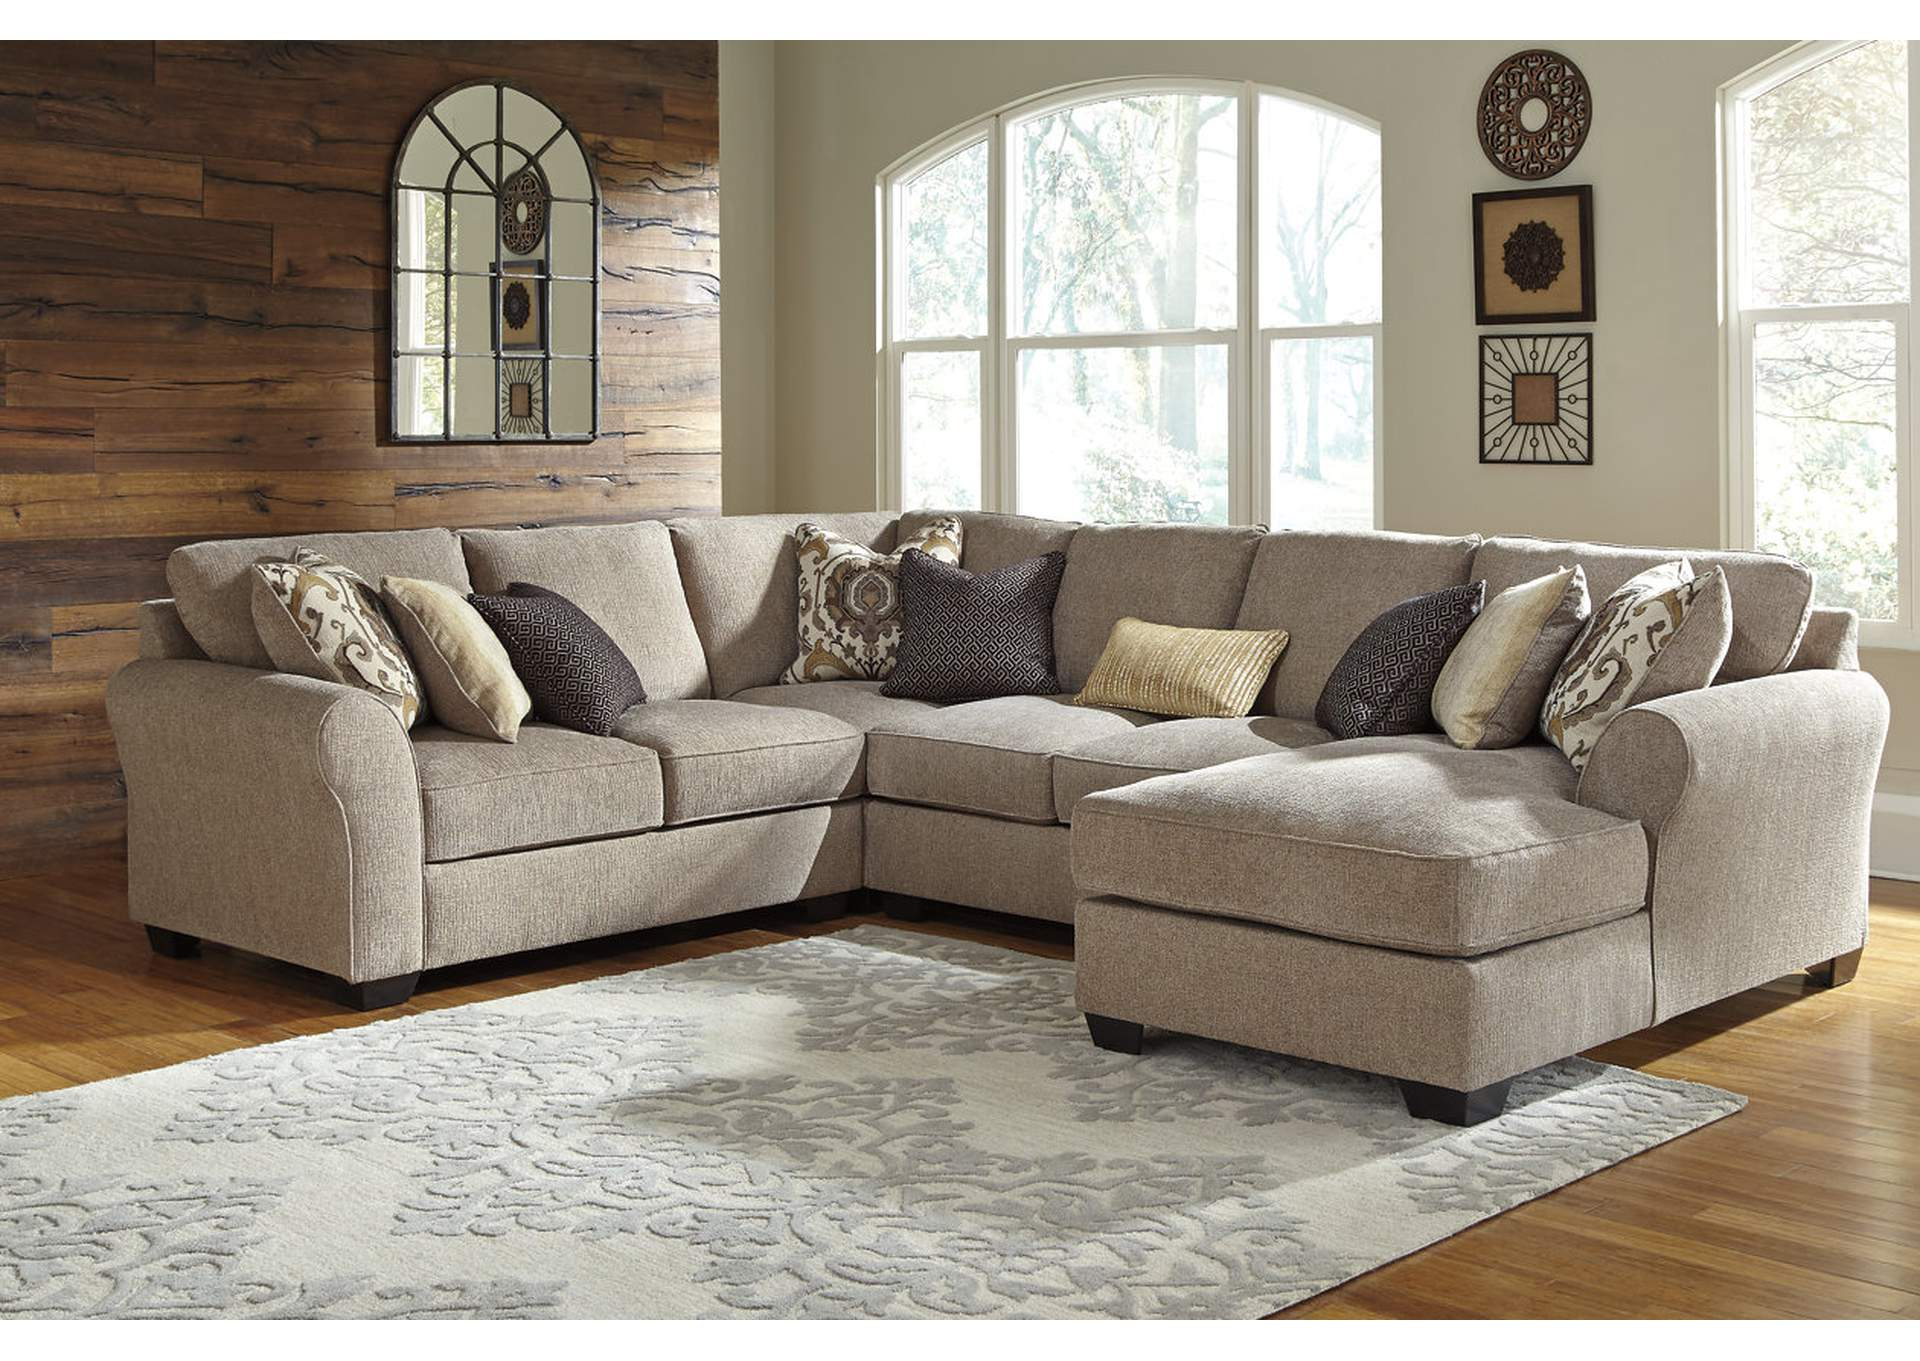 Pantomine Driftwood 4 Piece RAF Chaise Sectional,Benchcraft